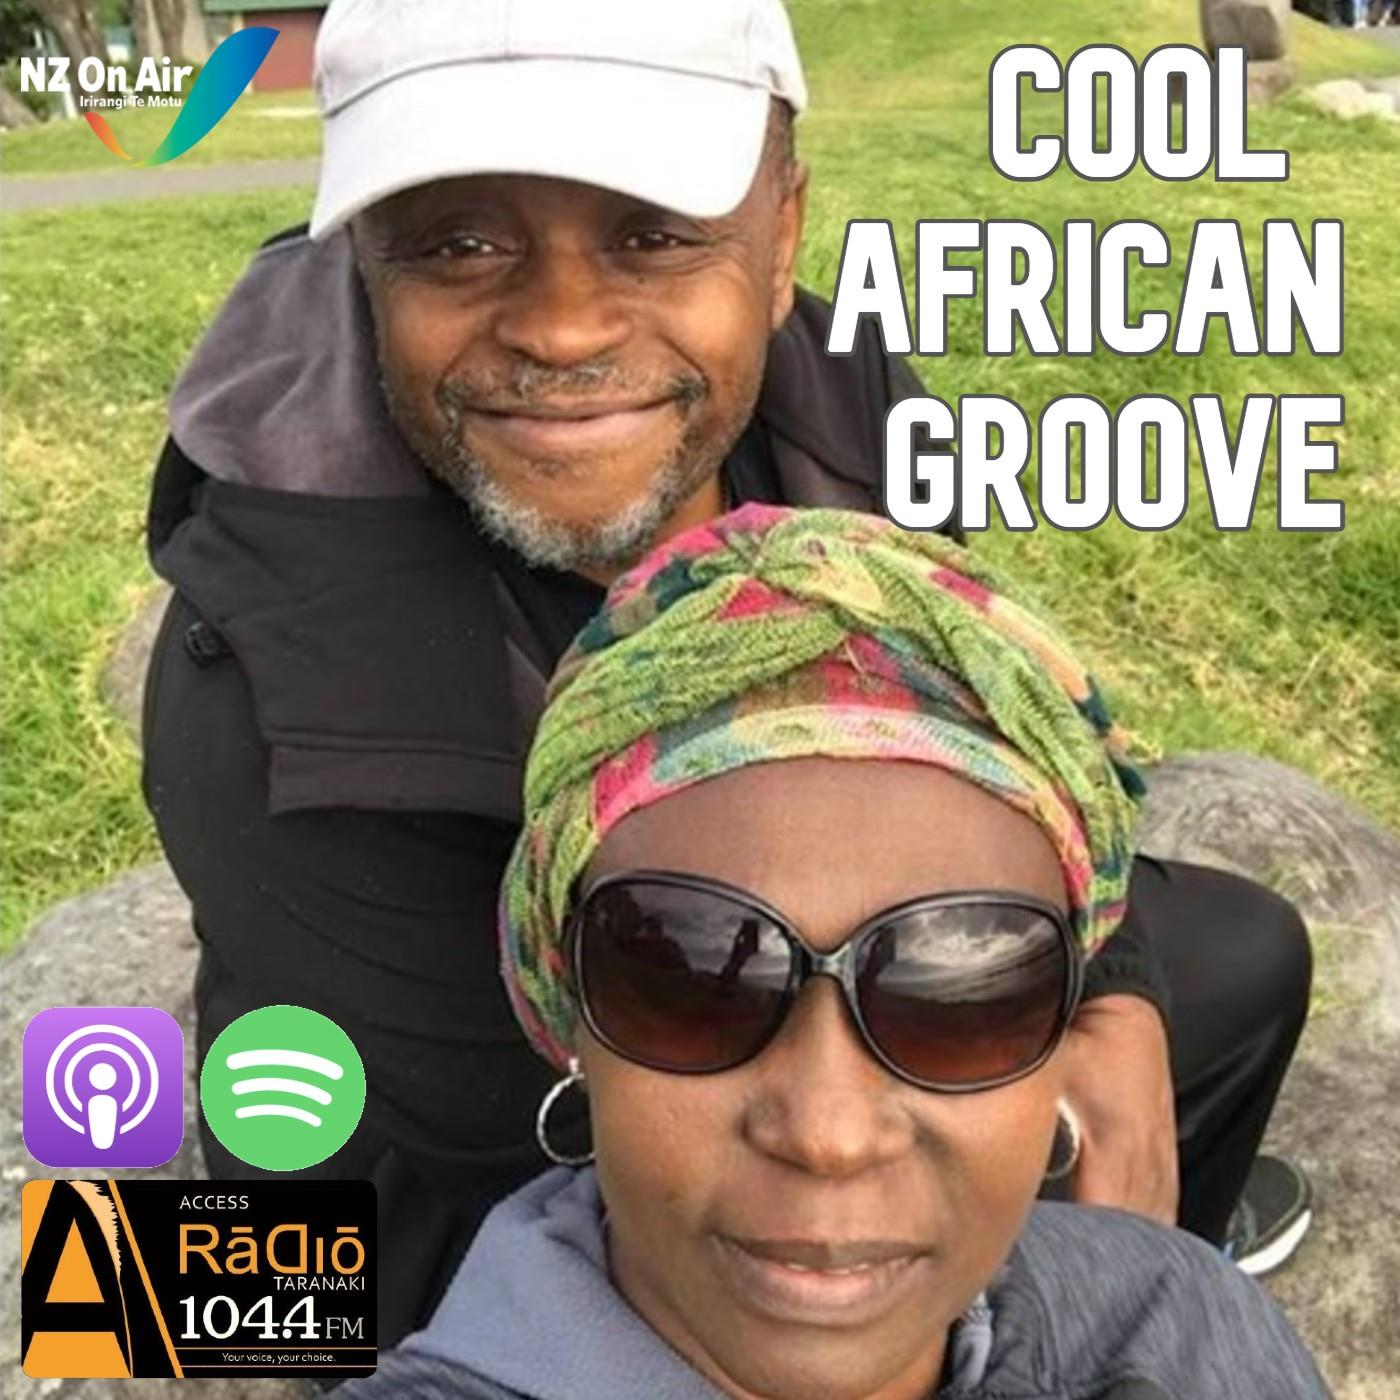 Cool African Groove